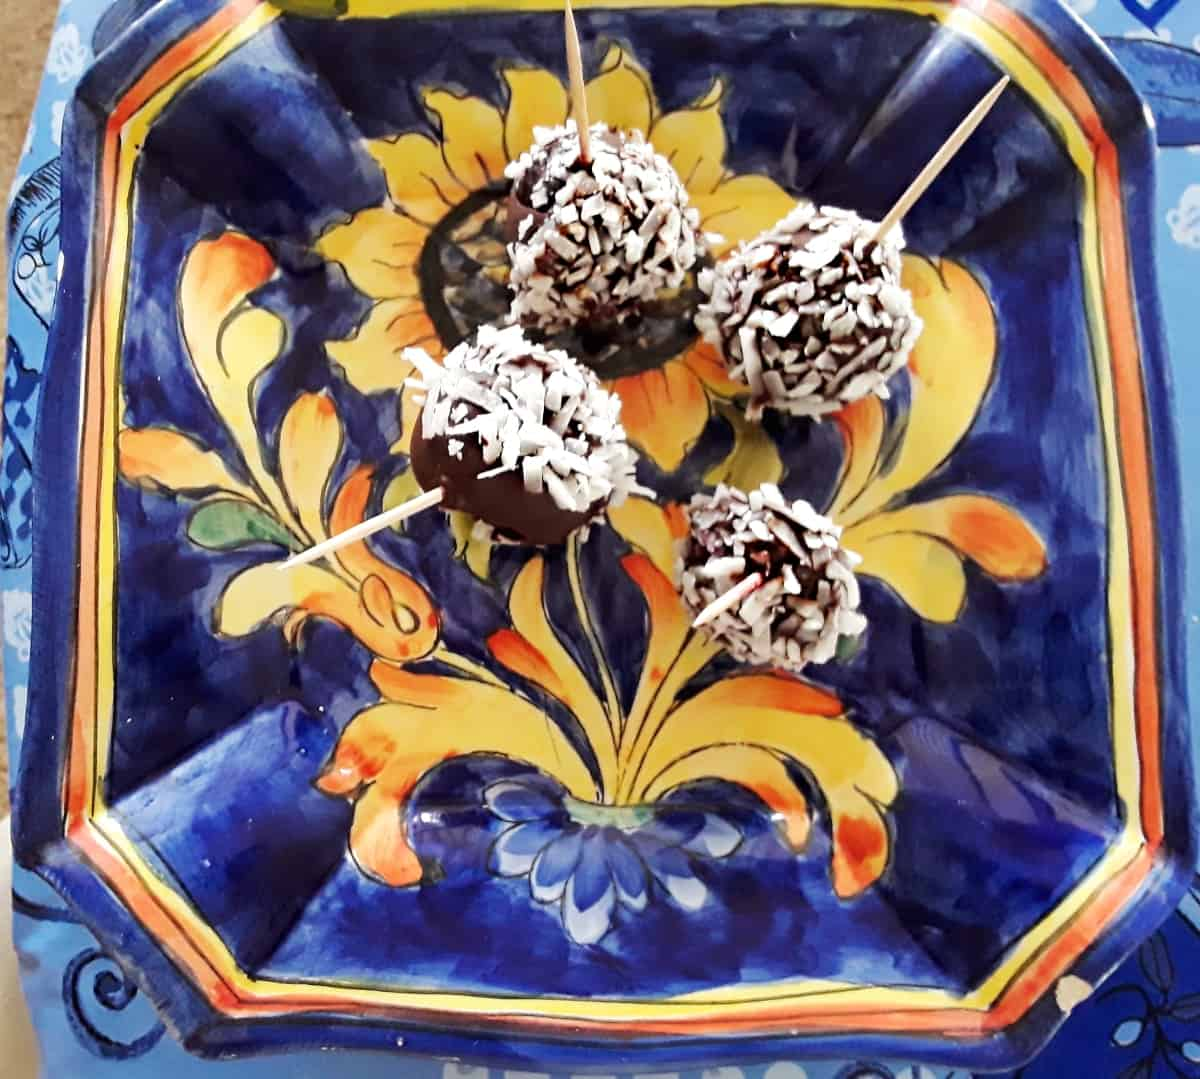 Chocolate covered cherries rolled in coconut on blue ceramic plate.